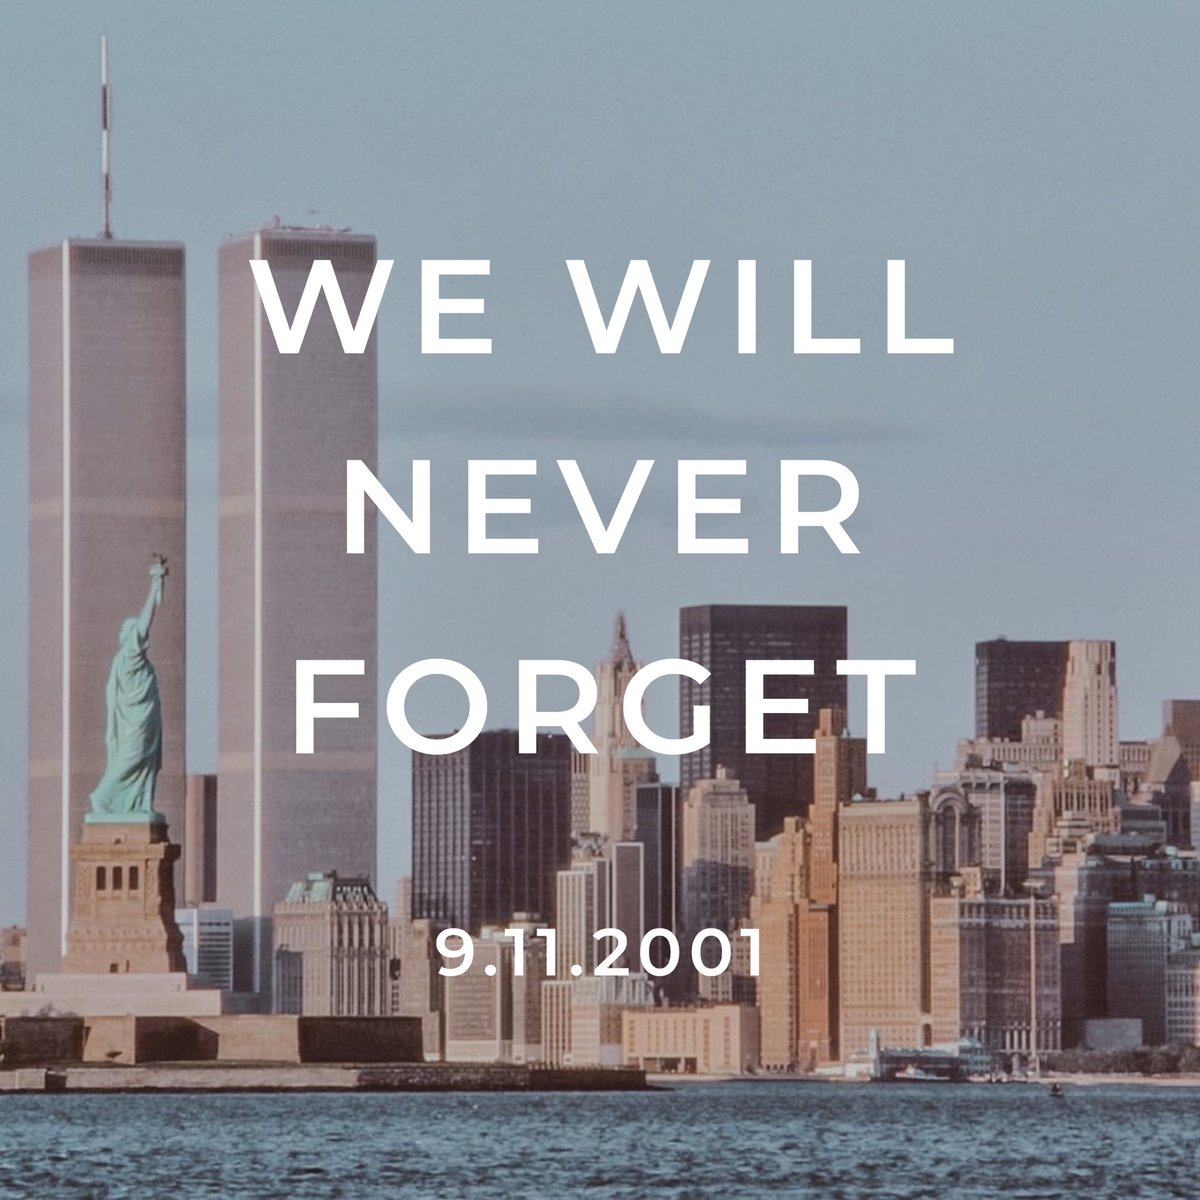 In remembrance of those we lost. #NeverForget 🇺🇸 https://t.co/mEdNkcN4Fj